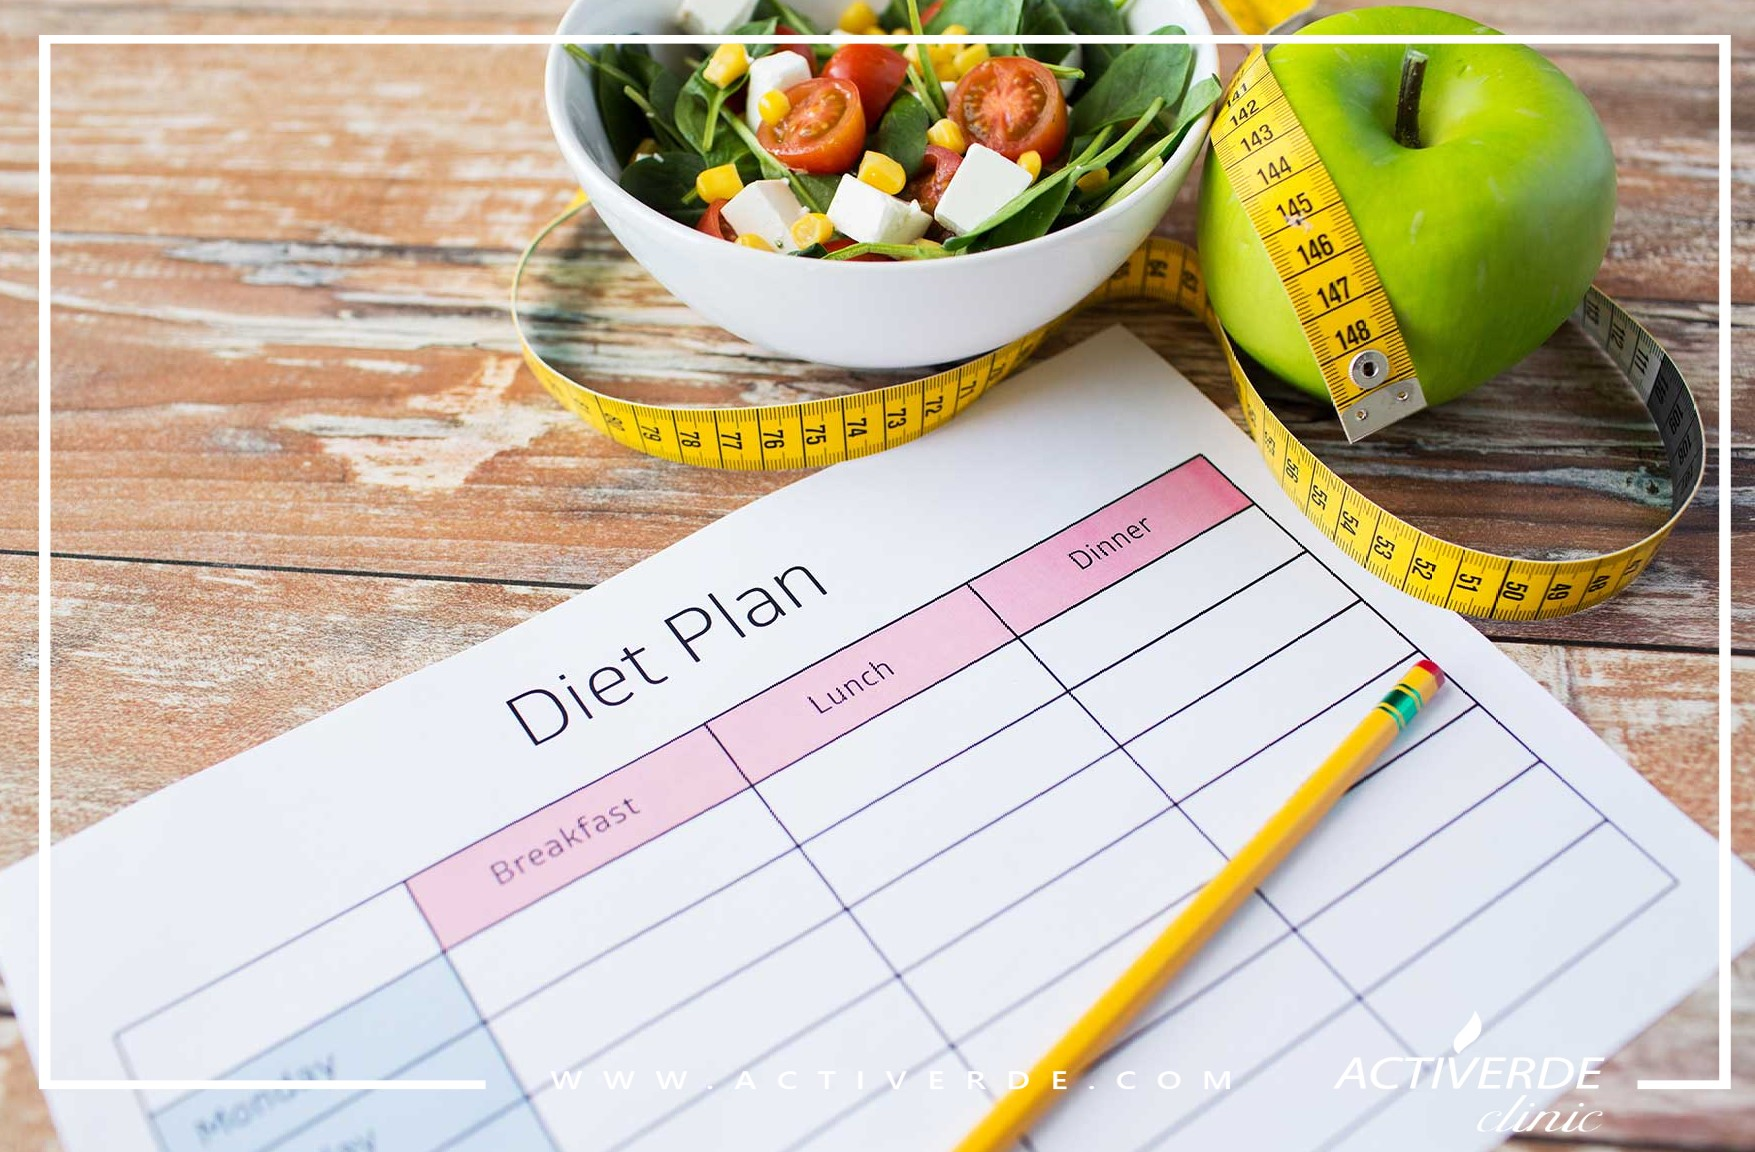 close-up-of-diet-plan-and-food-on-table-PTA2GP4